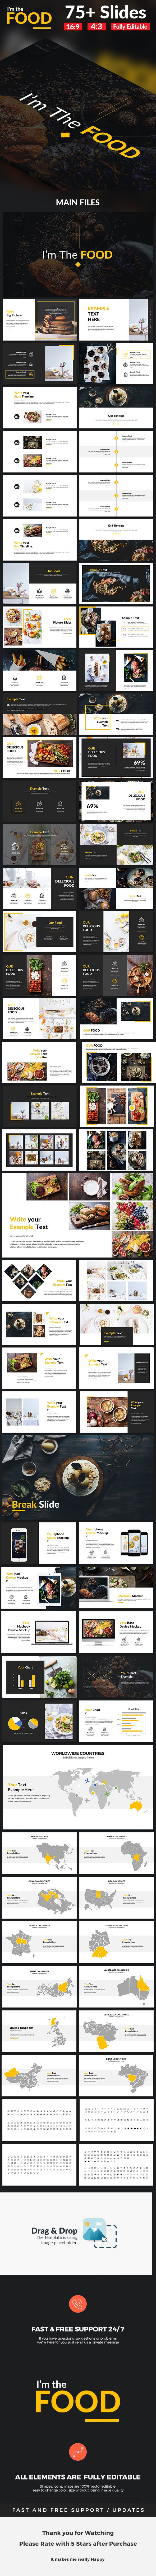 I'm the Food Keynote Template. Download here: https://graphicriver.net/item/im-the-food-keynote-template/16986781?ref=ksioks